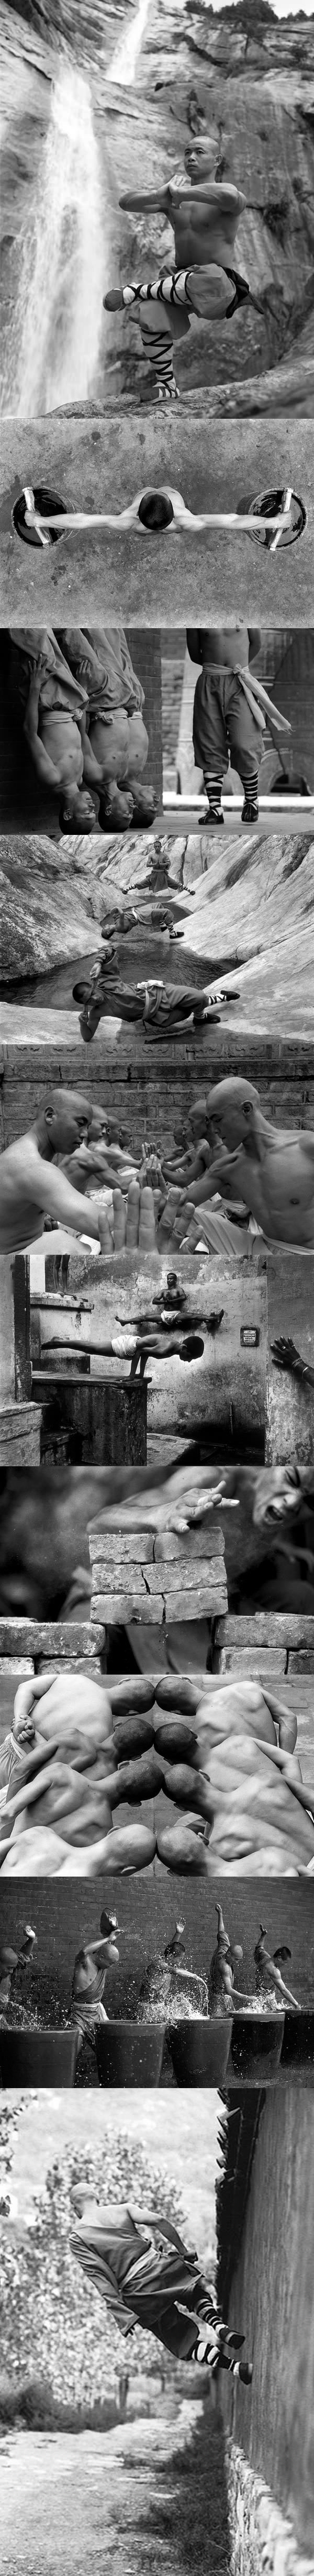 the dedication of shaolin monks, black and white